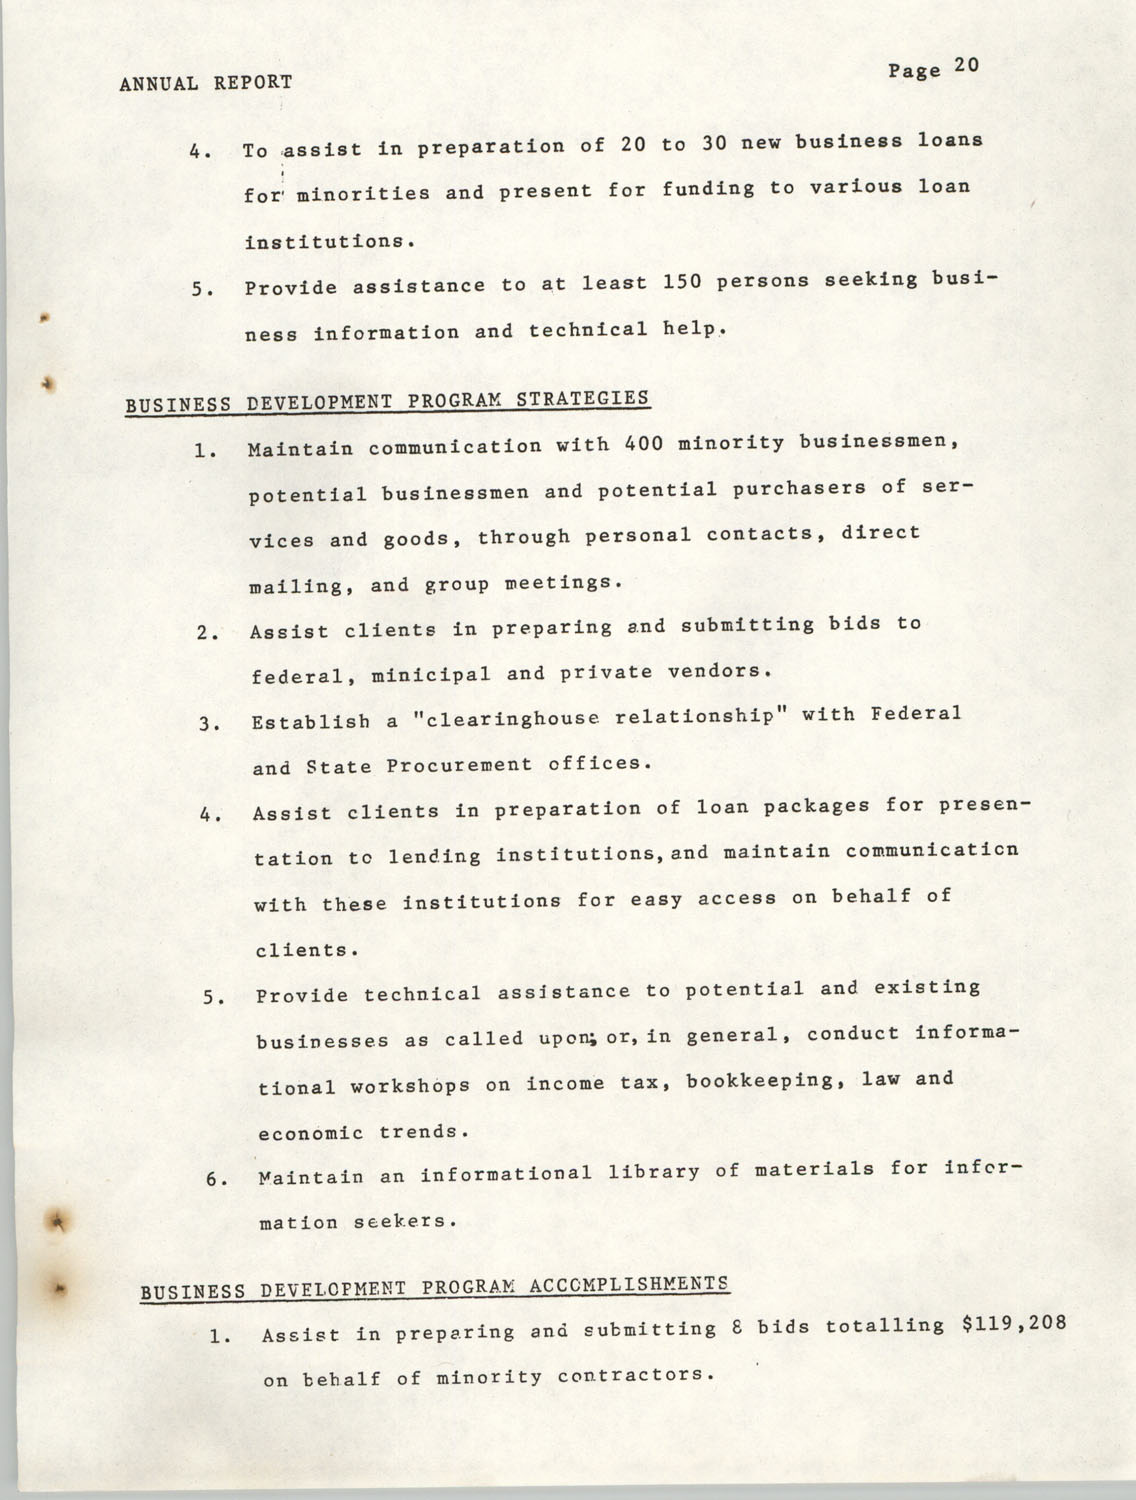 Annual Report, Penn Community Services, 1974, Page 20